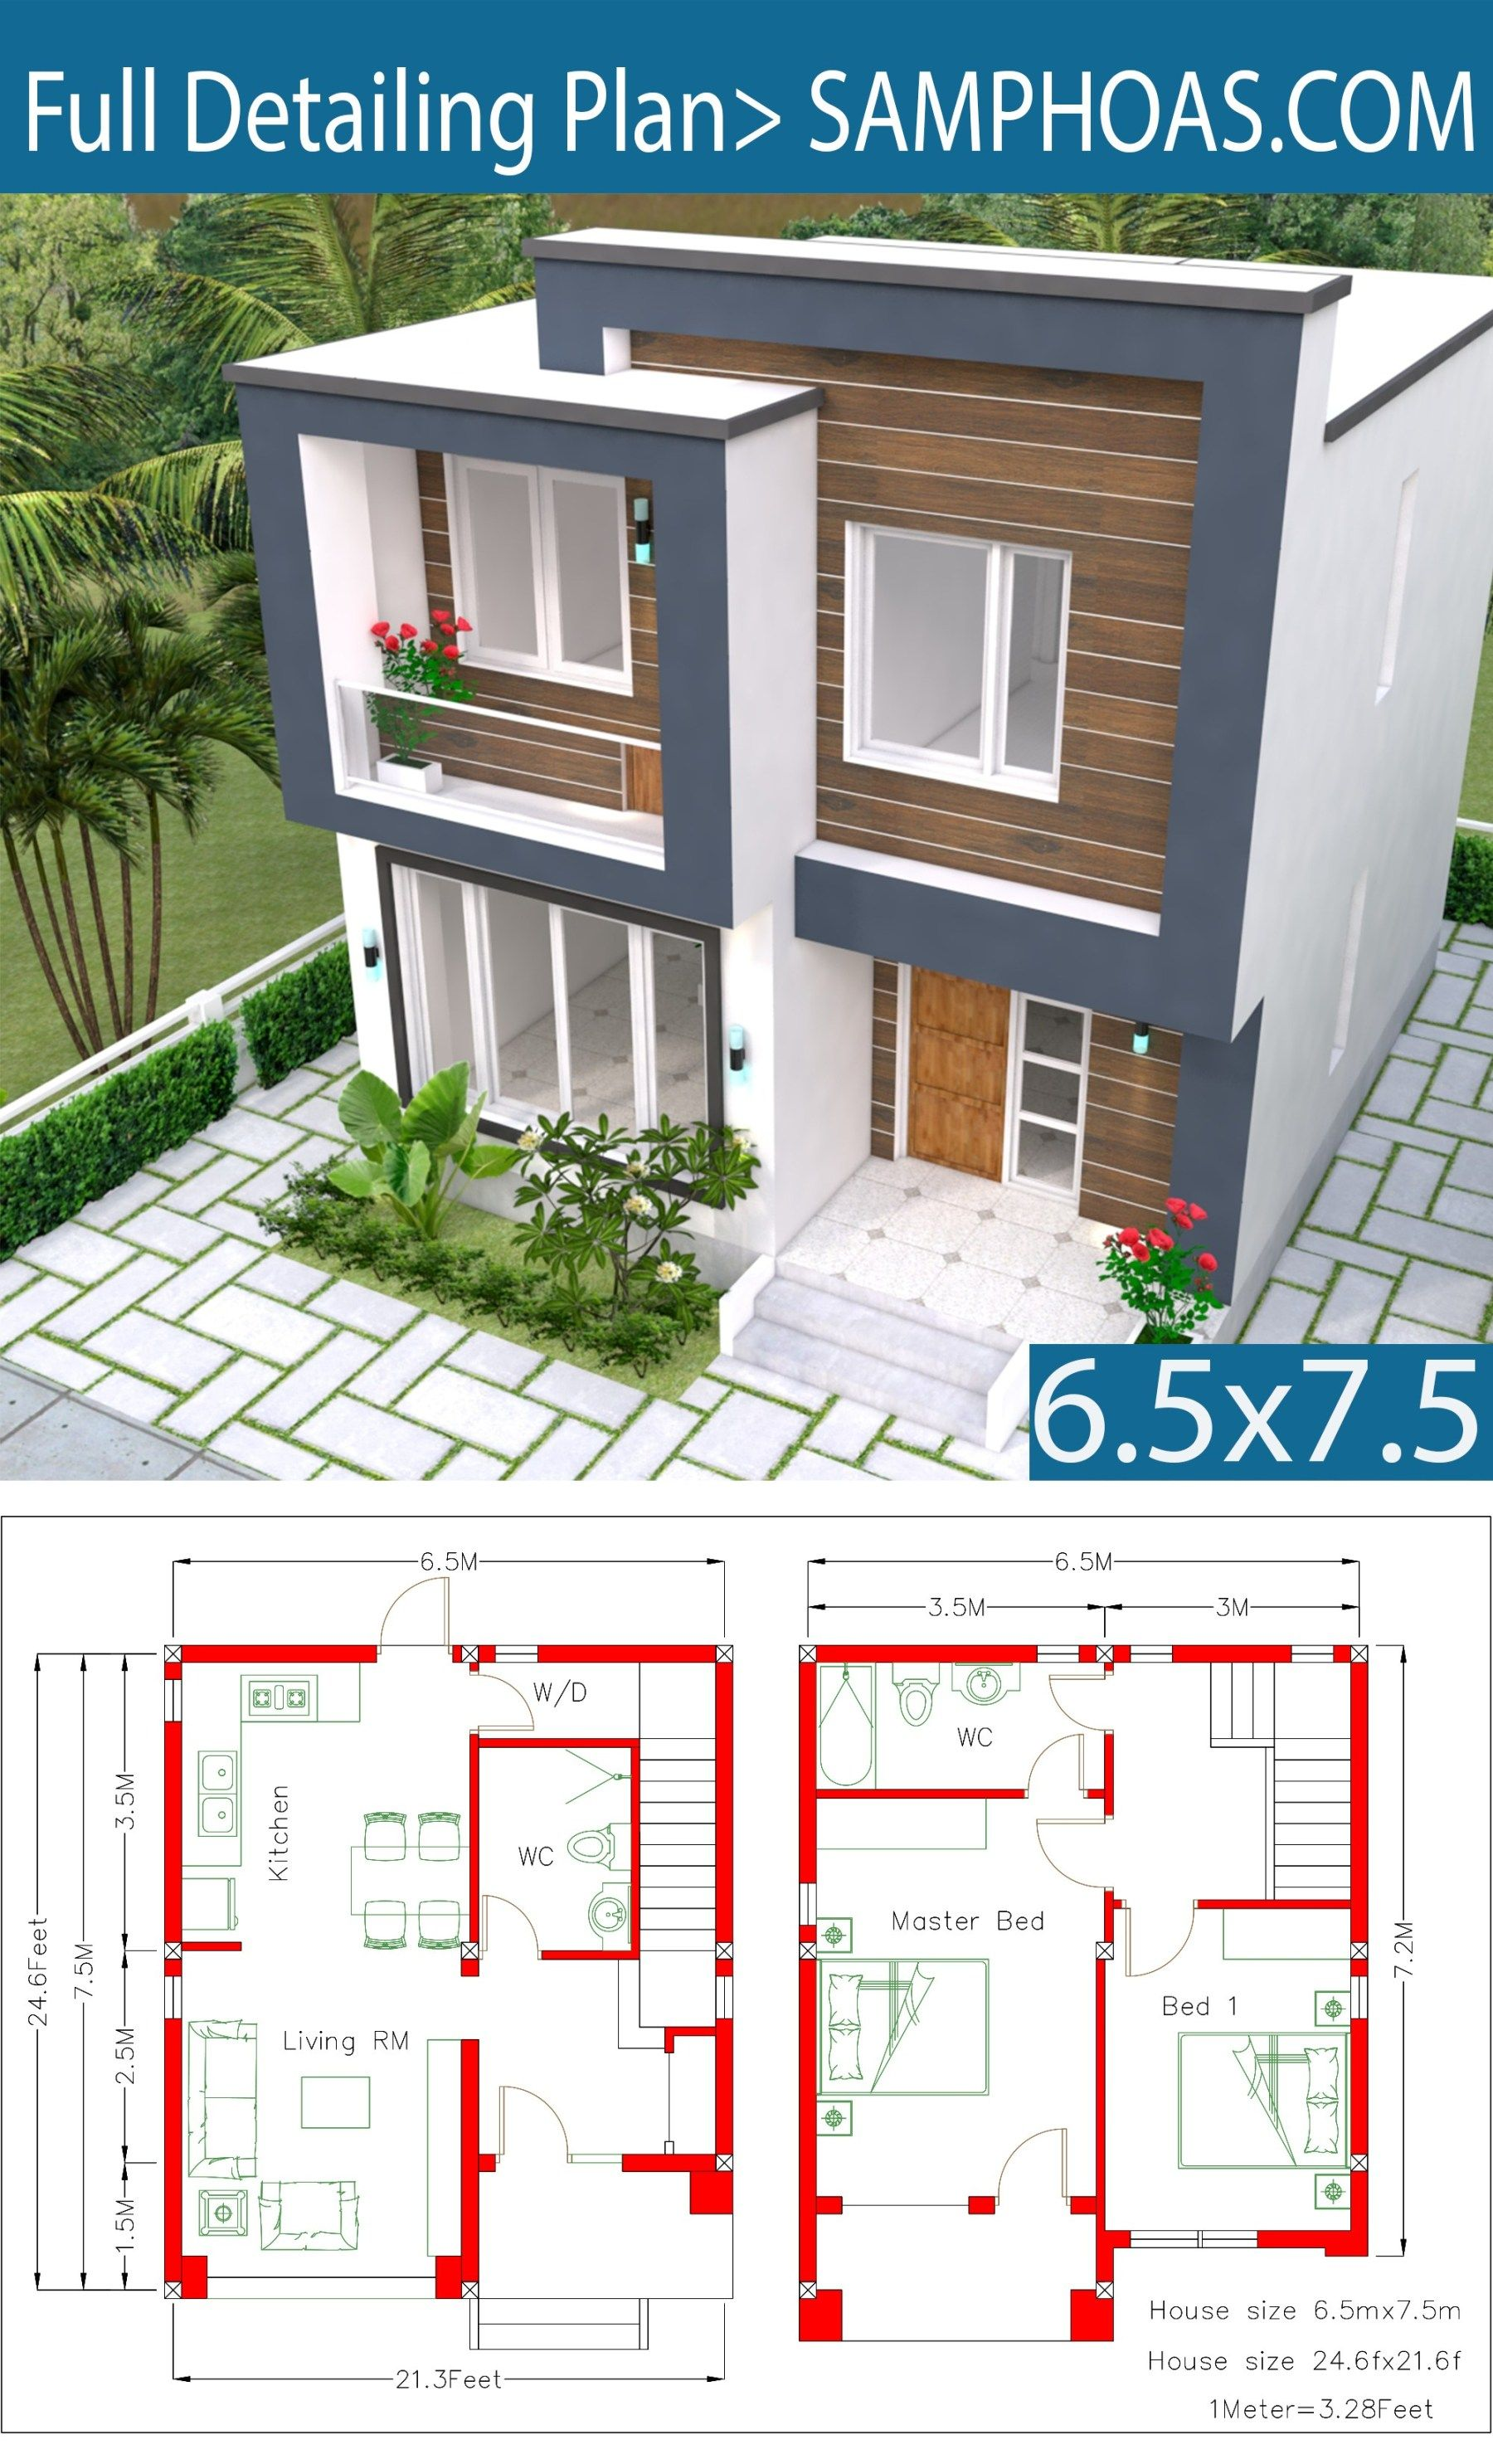 House Plans 6 5x7 5m With 2 Bedrooms Sam House Plans Architectural House Plans House Layout Plans House Plans